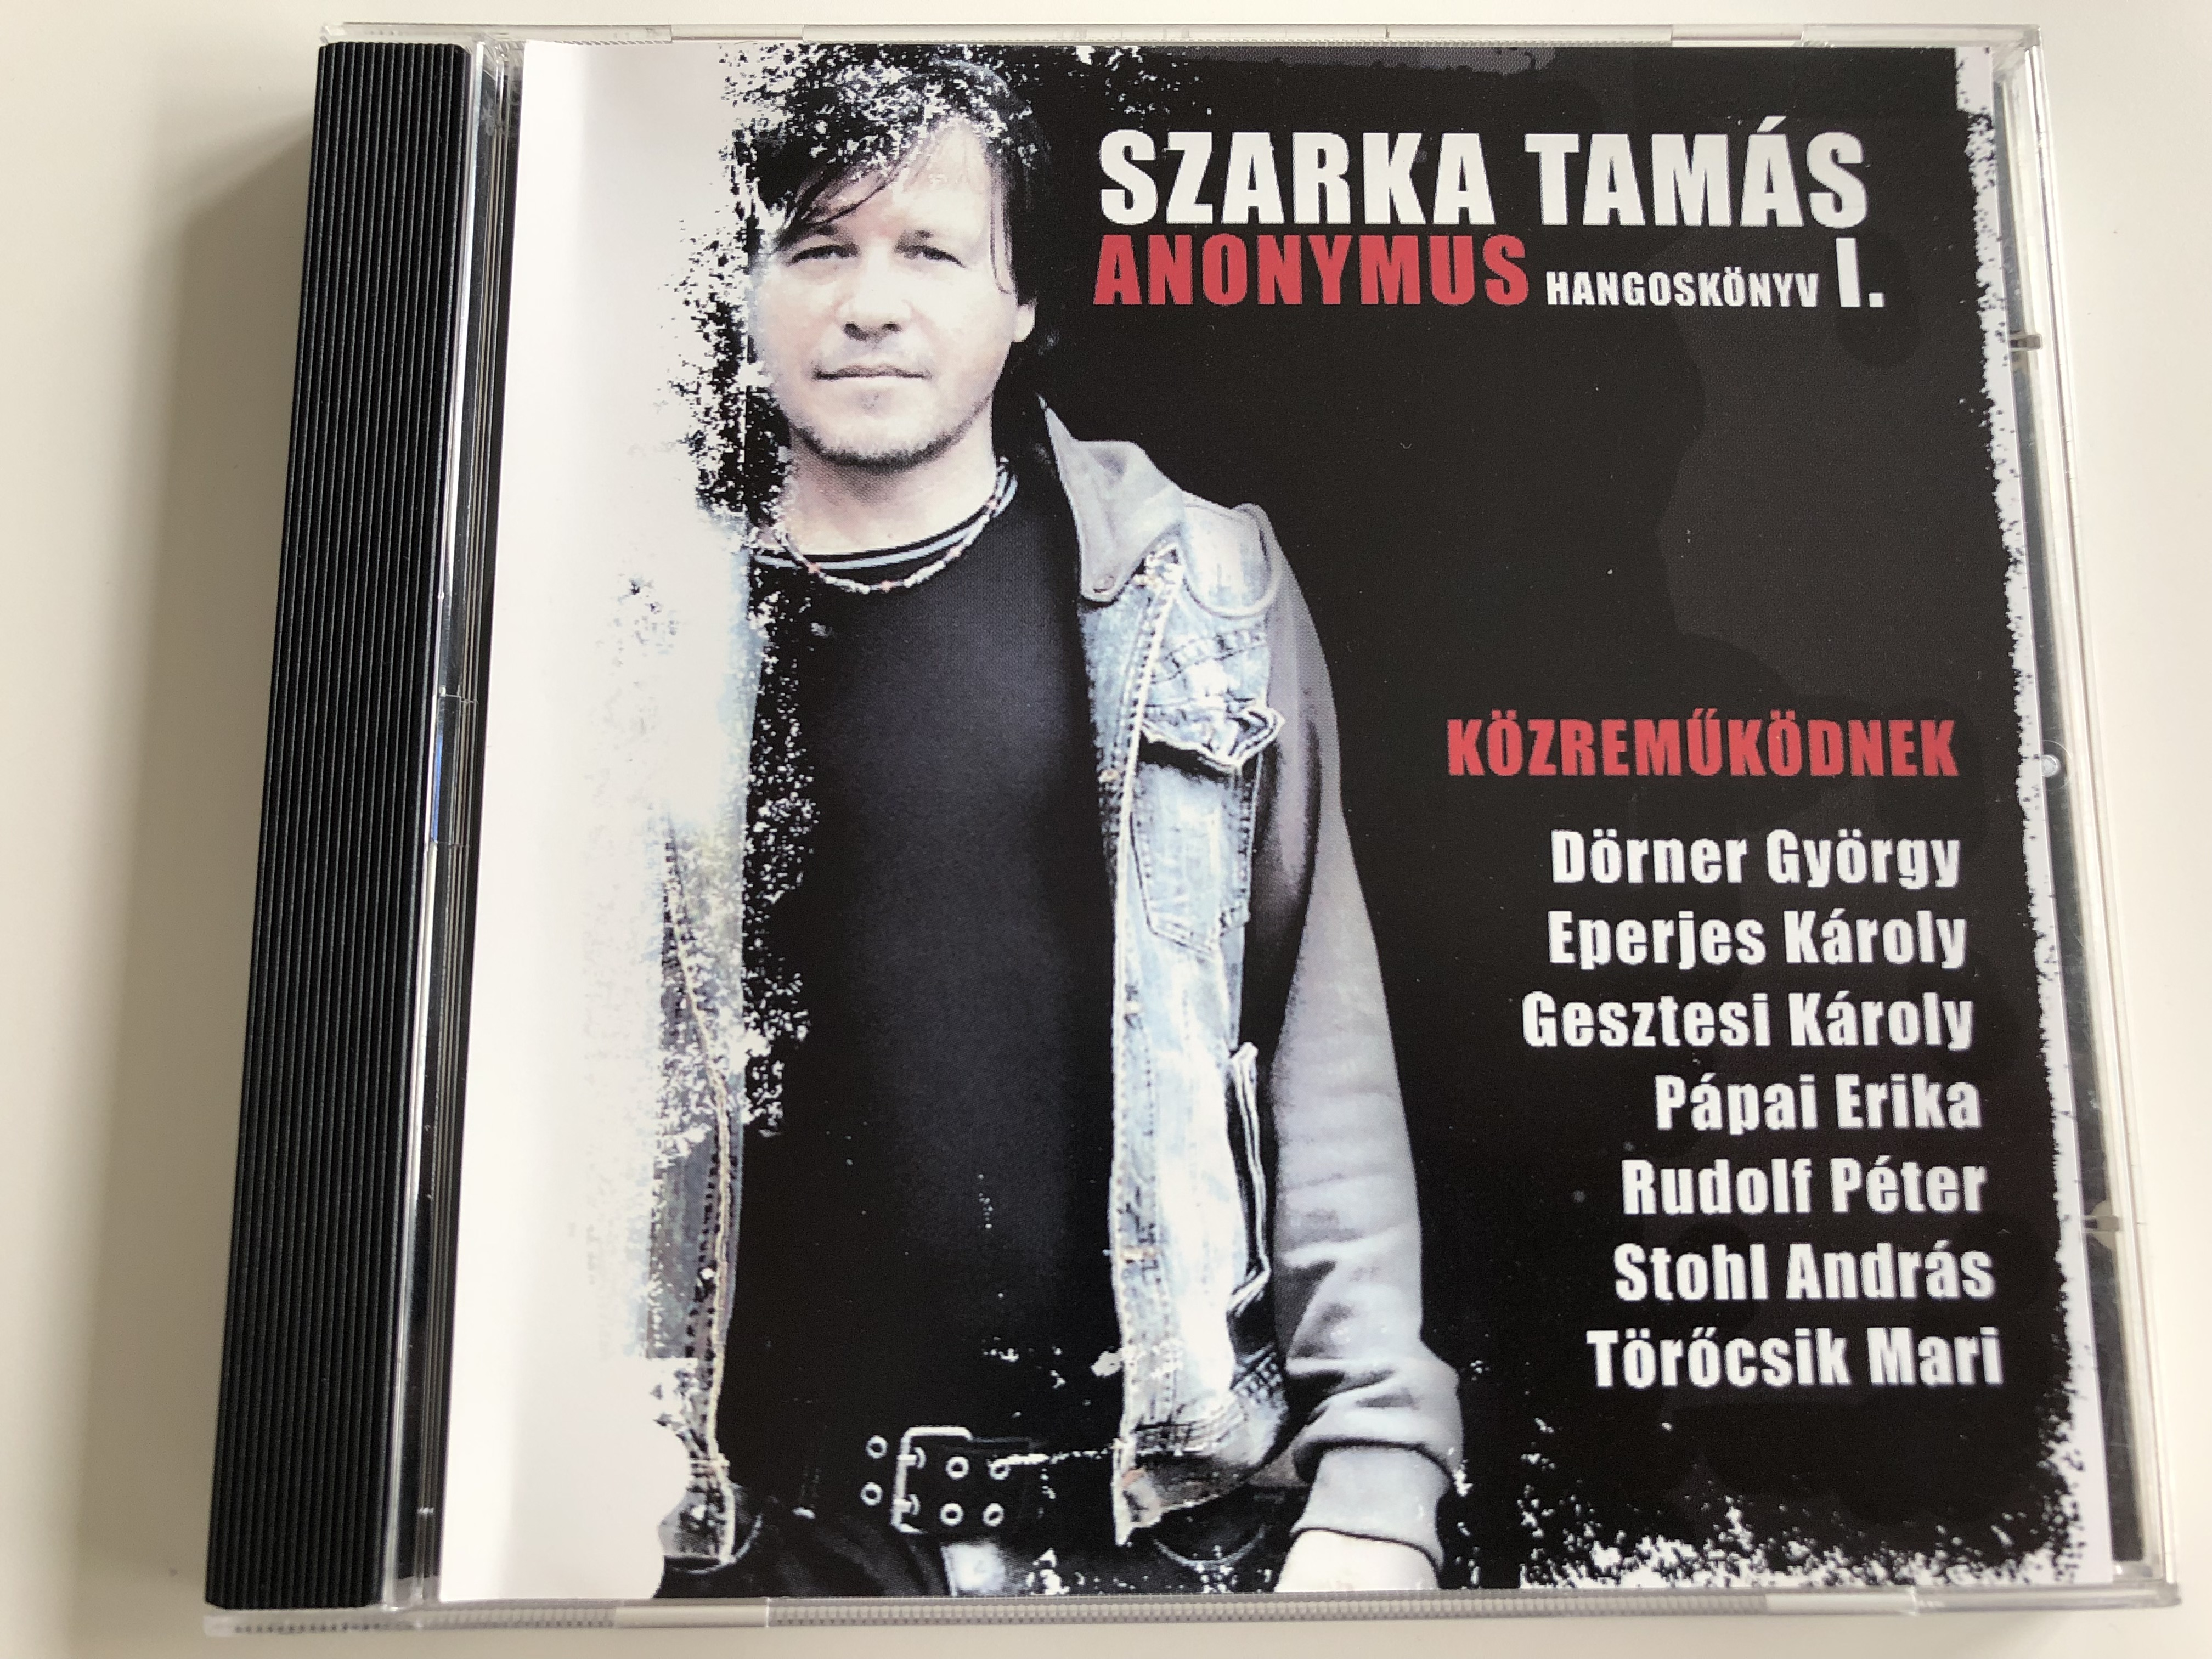 szarka-tam-s-anonymus-hangosk-nyv-i.-audio-book-contributors-d-rner-gy-rgy-eperjes-k-roly-gesztesi-k-roly-p-pai-erika-rudolf-p-ter-stohl-andr-s-t-r-csik-mari-audio-cd-2008-kossuth-mojzer-1-.jpg